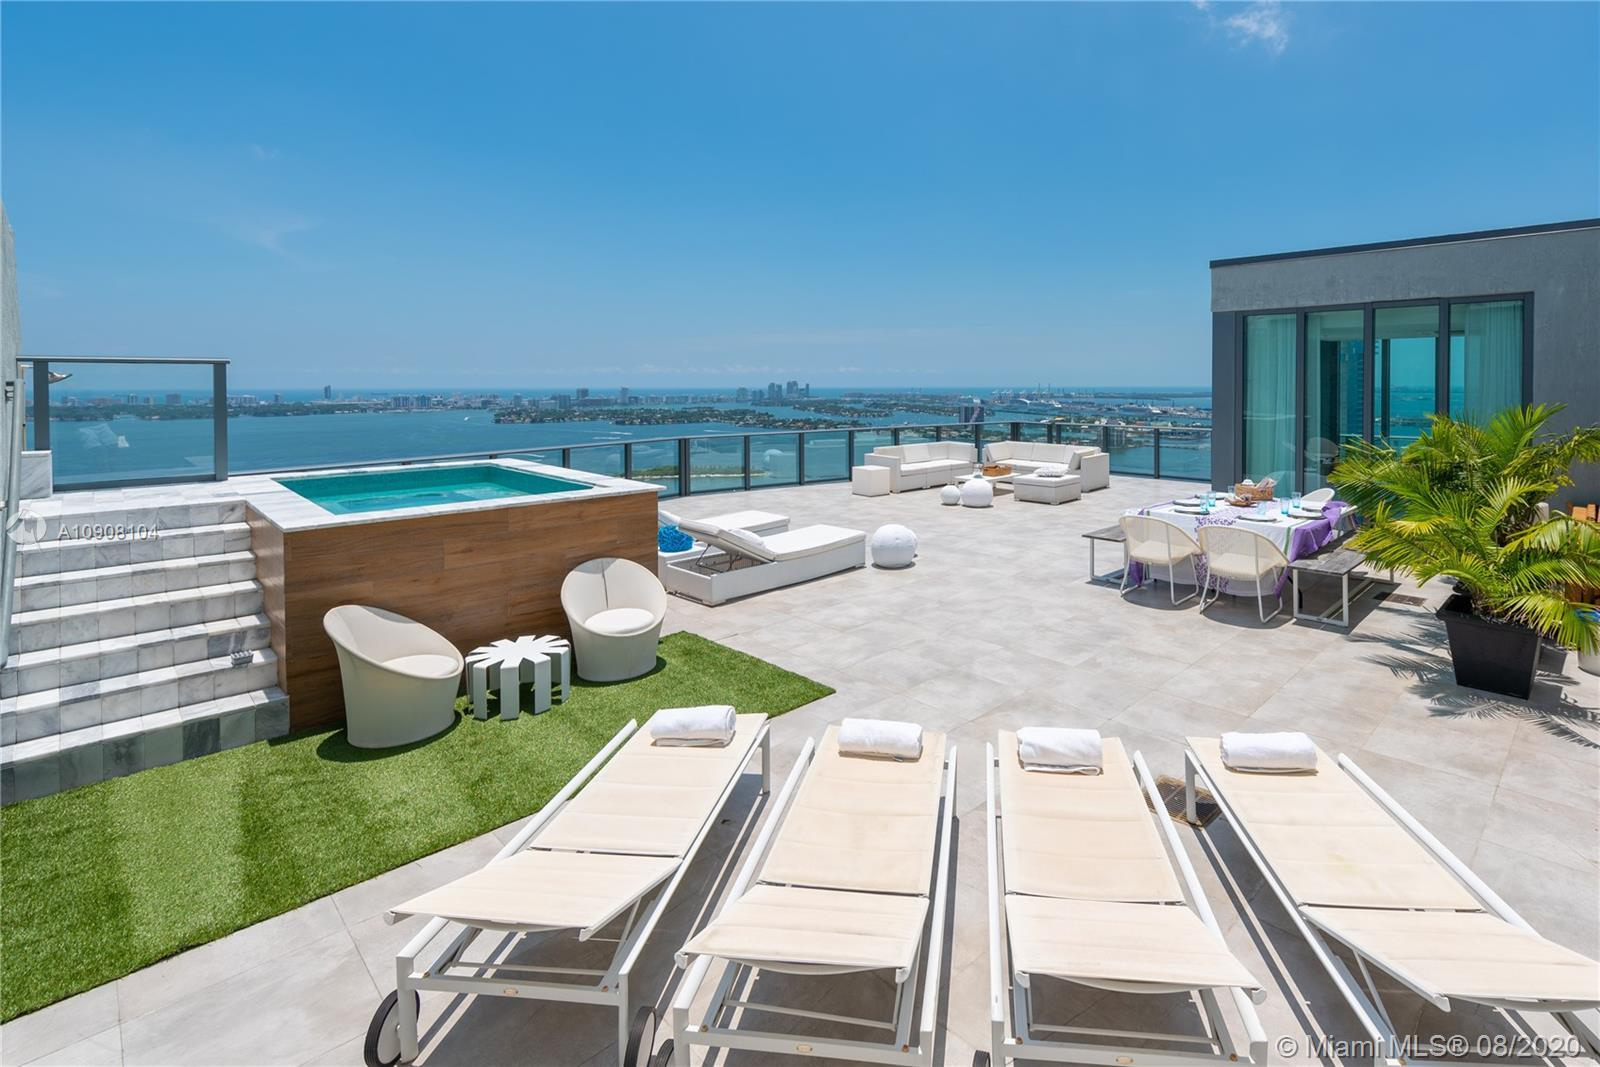 Real Penthouse: Incredible 4 Bed/4.5 Bath Corner Upper Penthouse with enormous rooftop terrace with